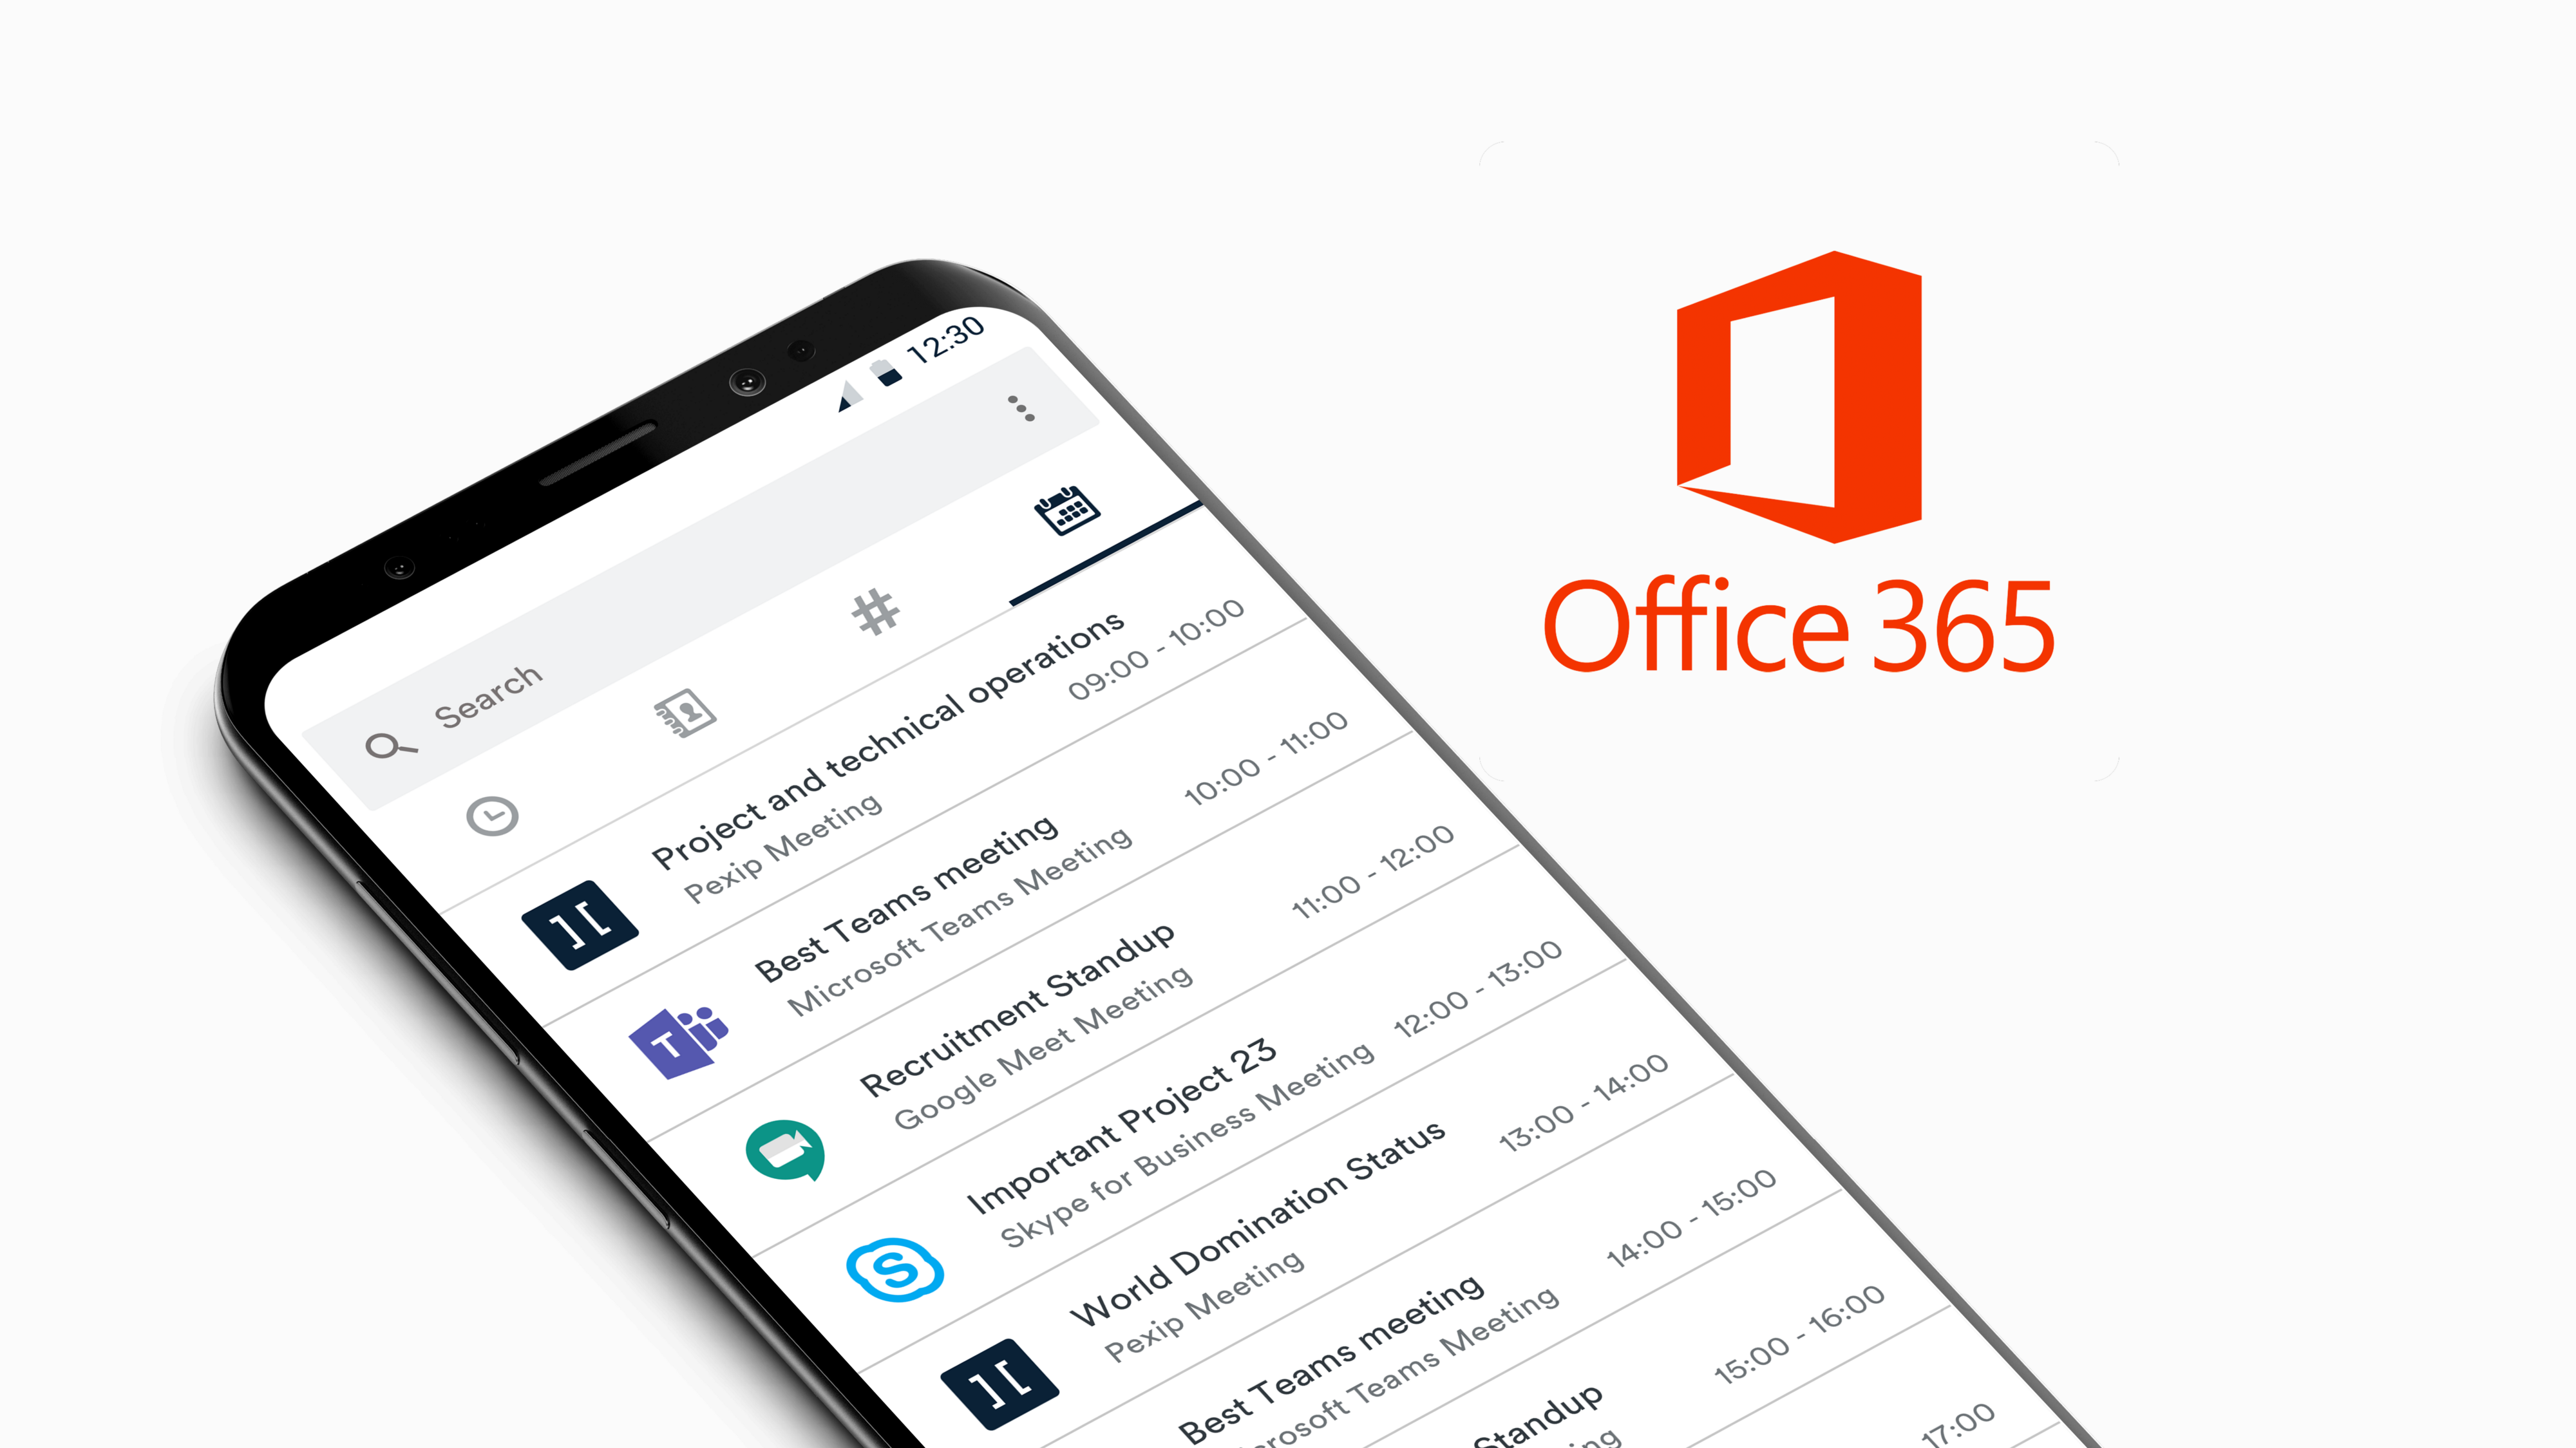 Office 365 meetings on Android